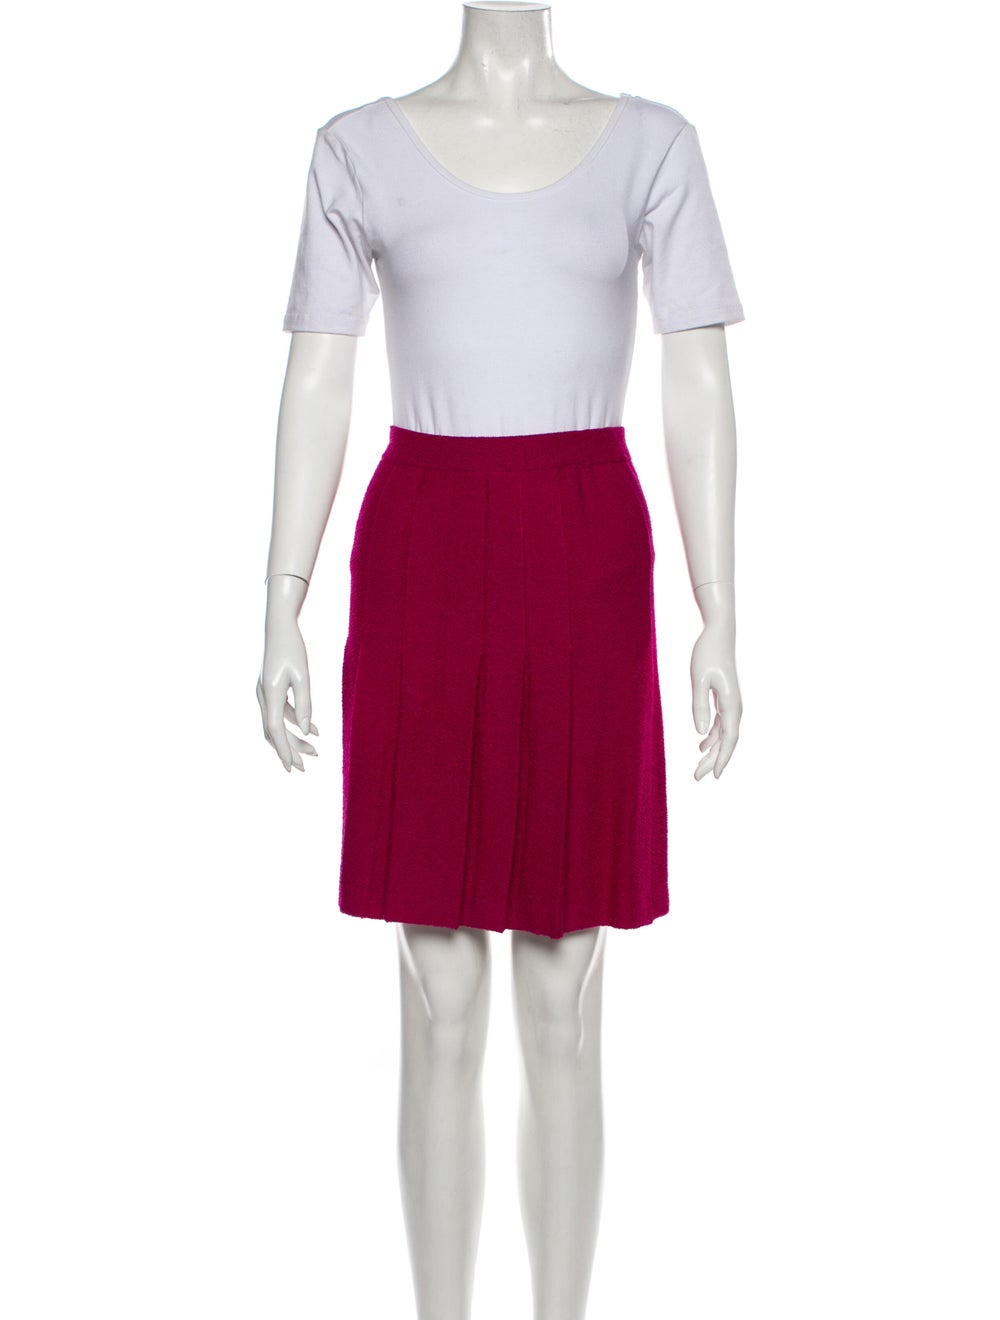 St. John Pleated Accents Skirt Suit Pink - image 4